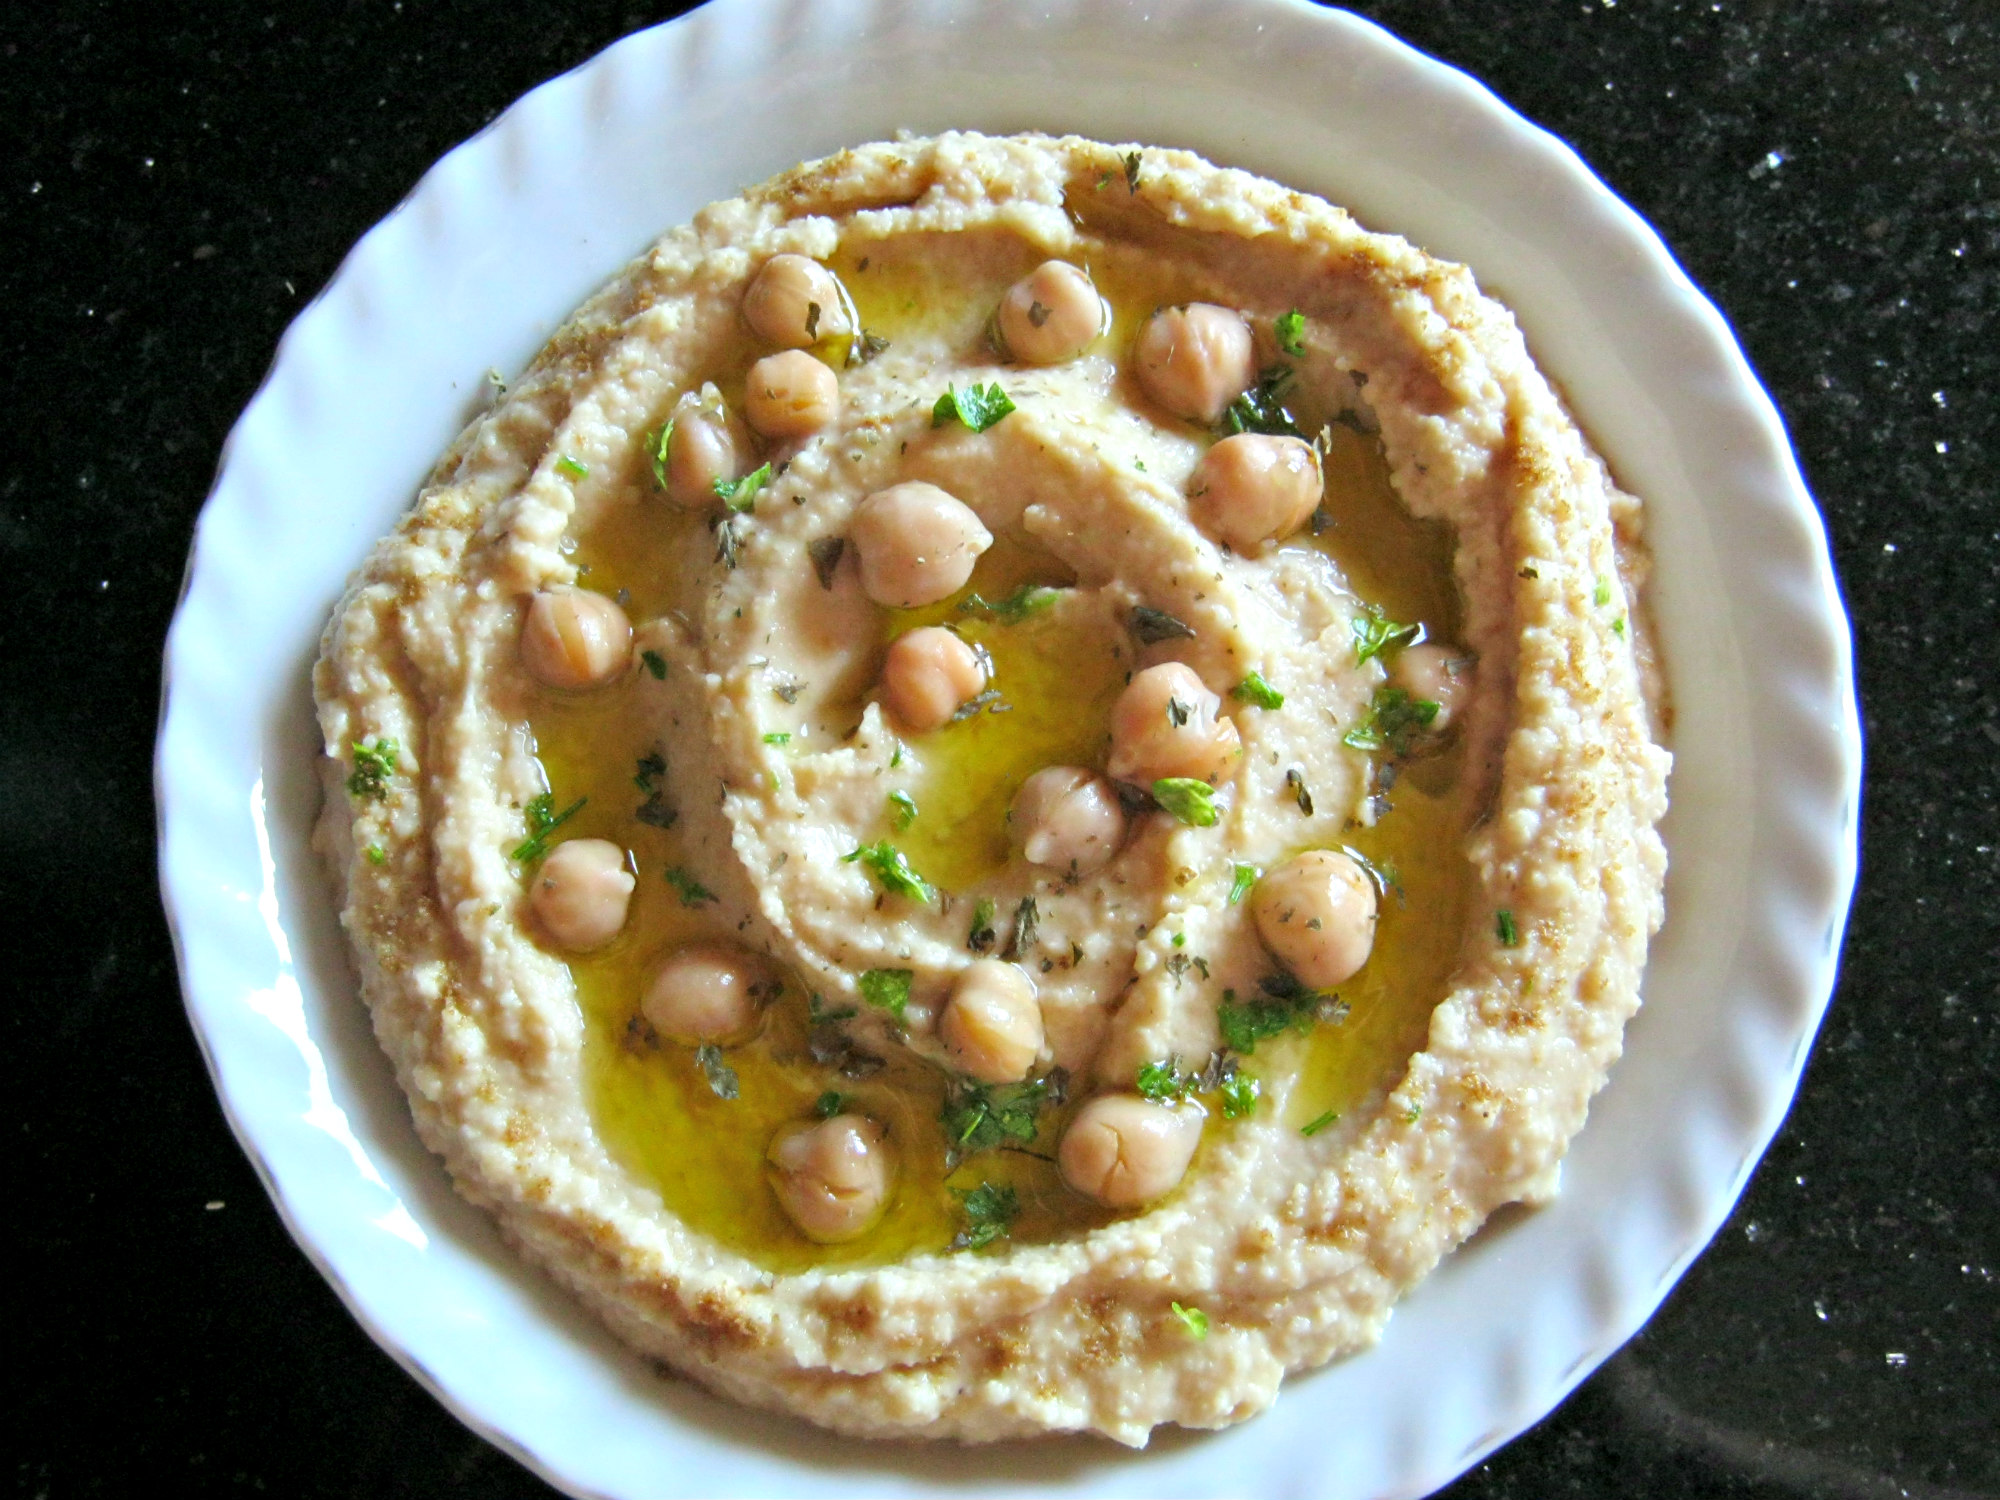 Hummus garnished with olive oil, parsley flakes and ground cumin